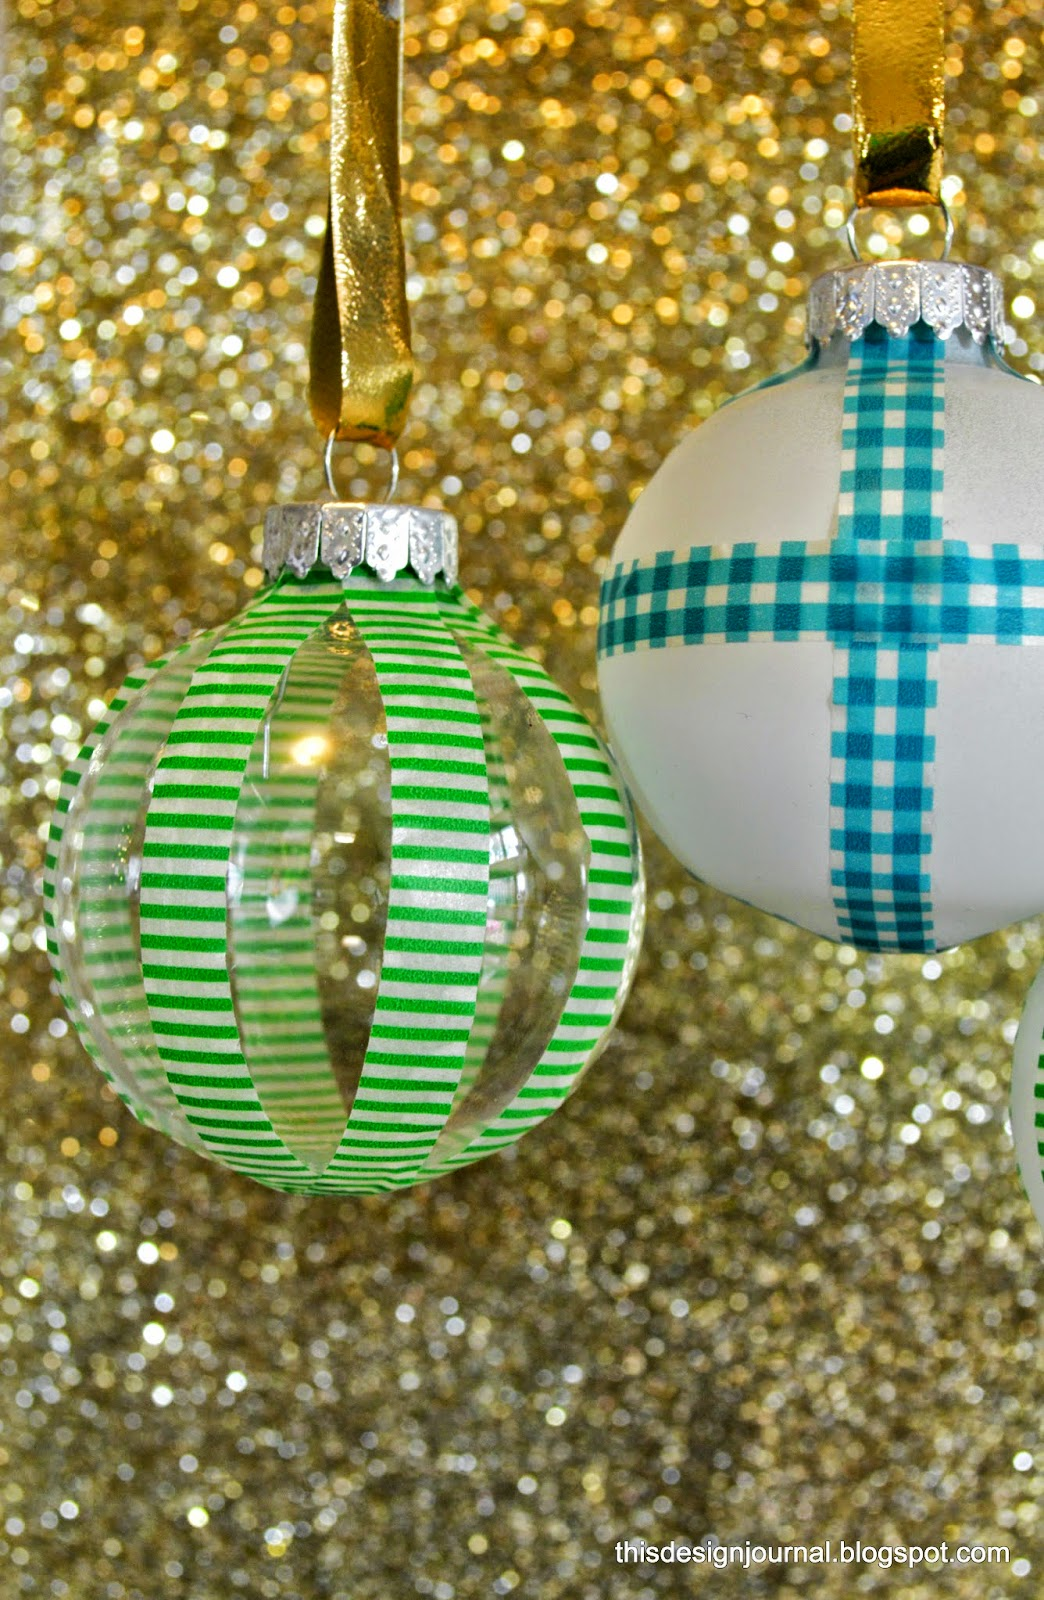 Christmas ornaments the diy way this design journal - Ornament tapete weiay ...